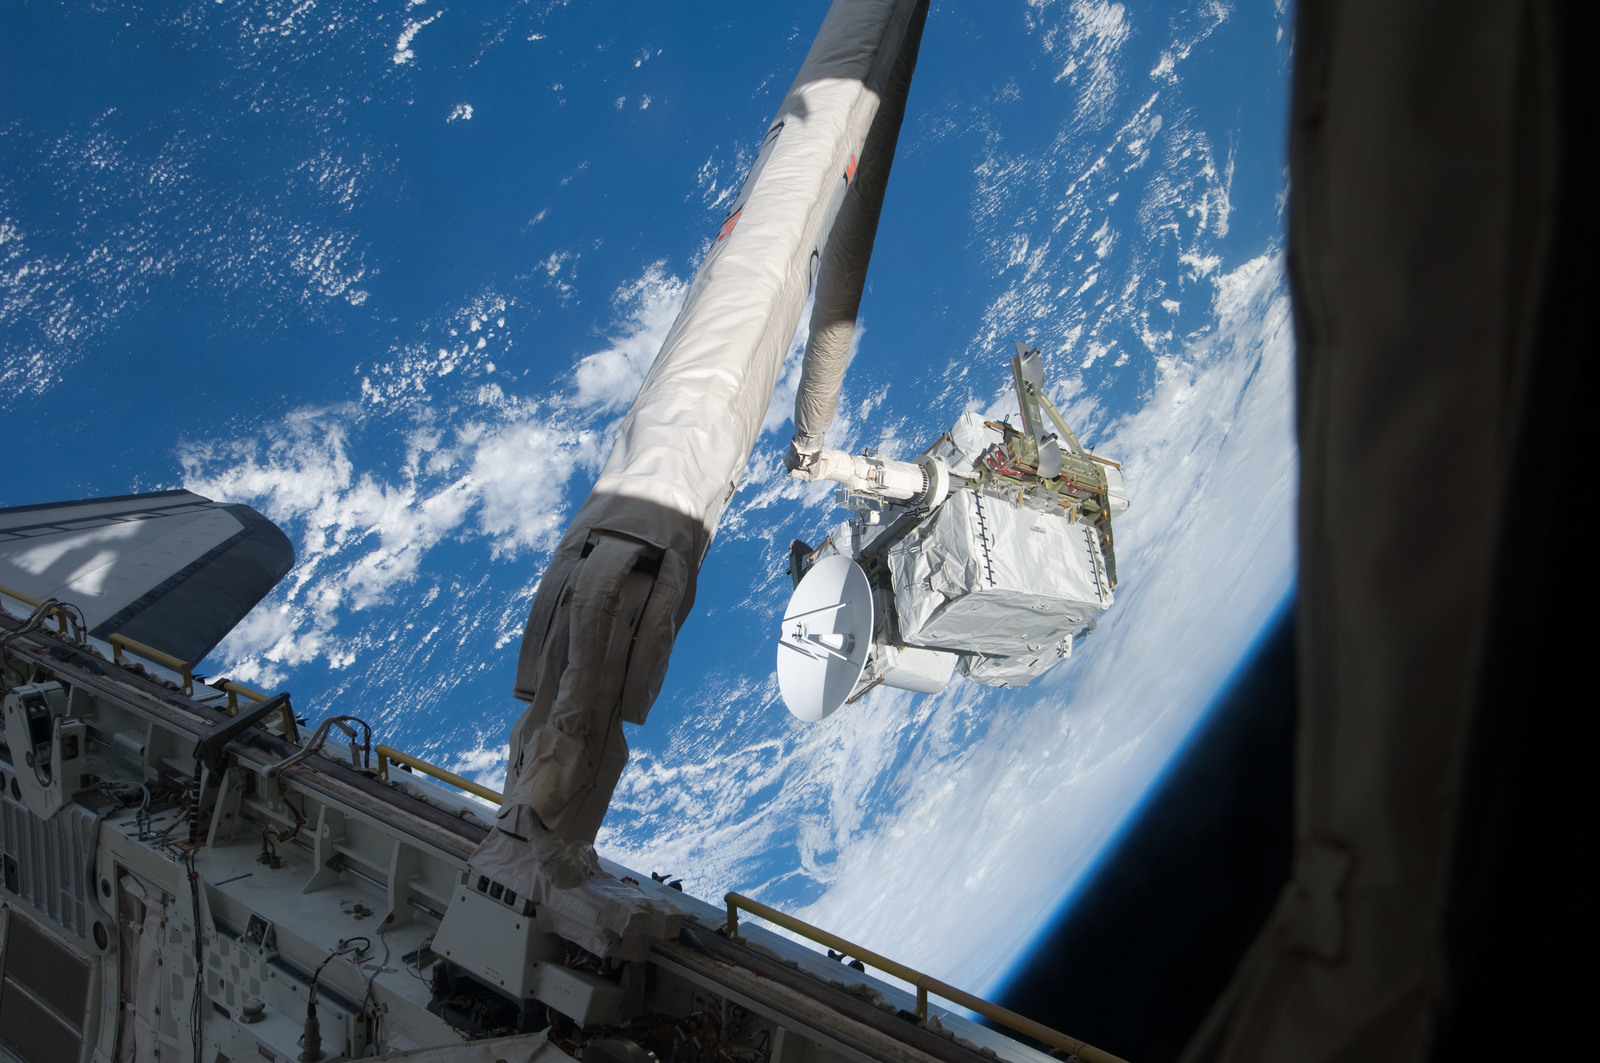 S127E006932 - STS-127 - SRMS maneuvers the ICC-VLD during STS-127 / Expedition 20 Joint Operations